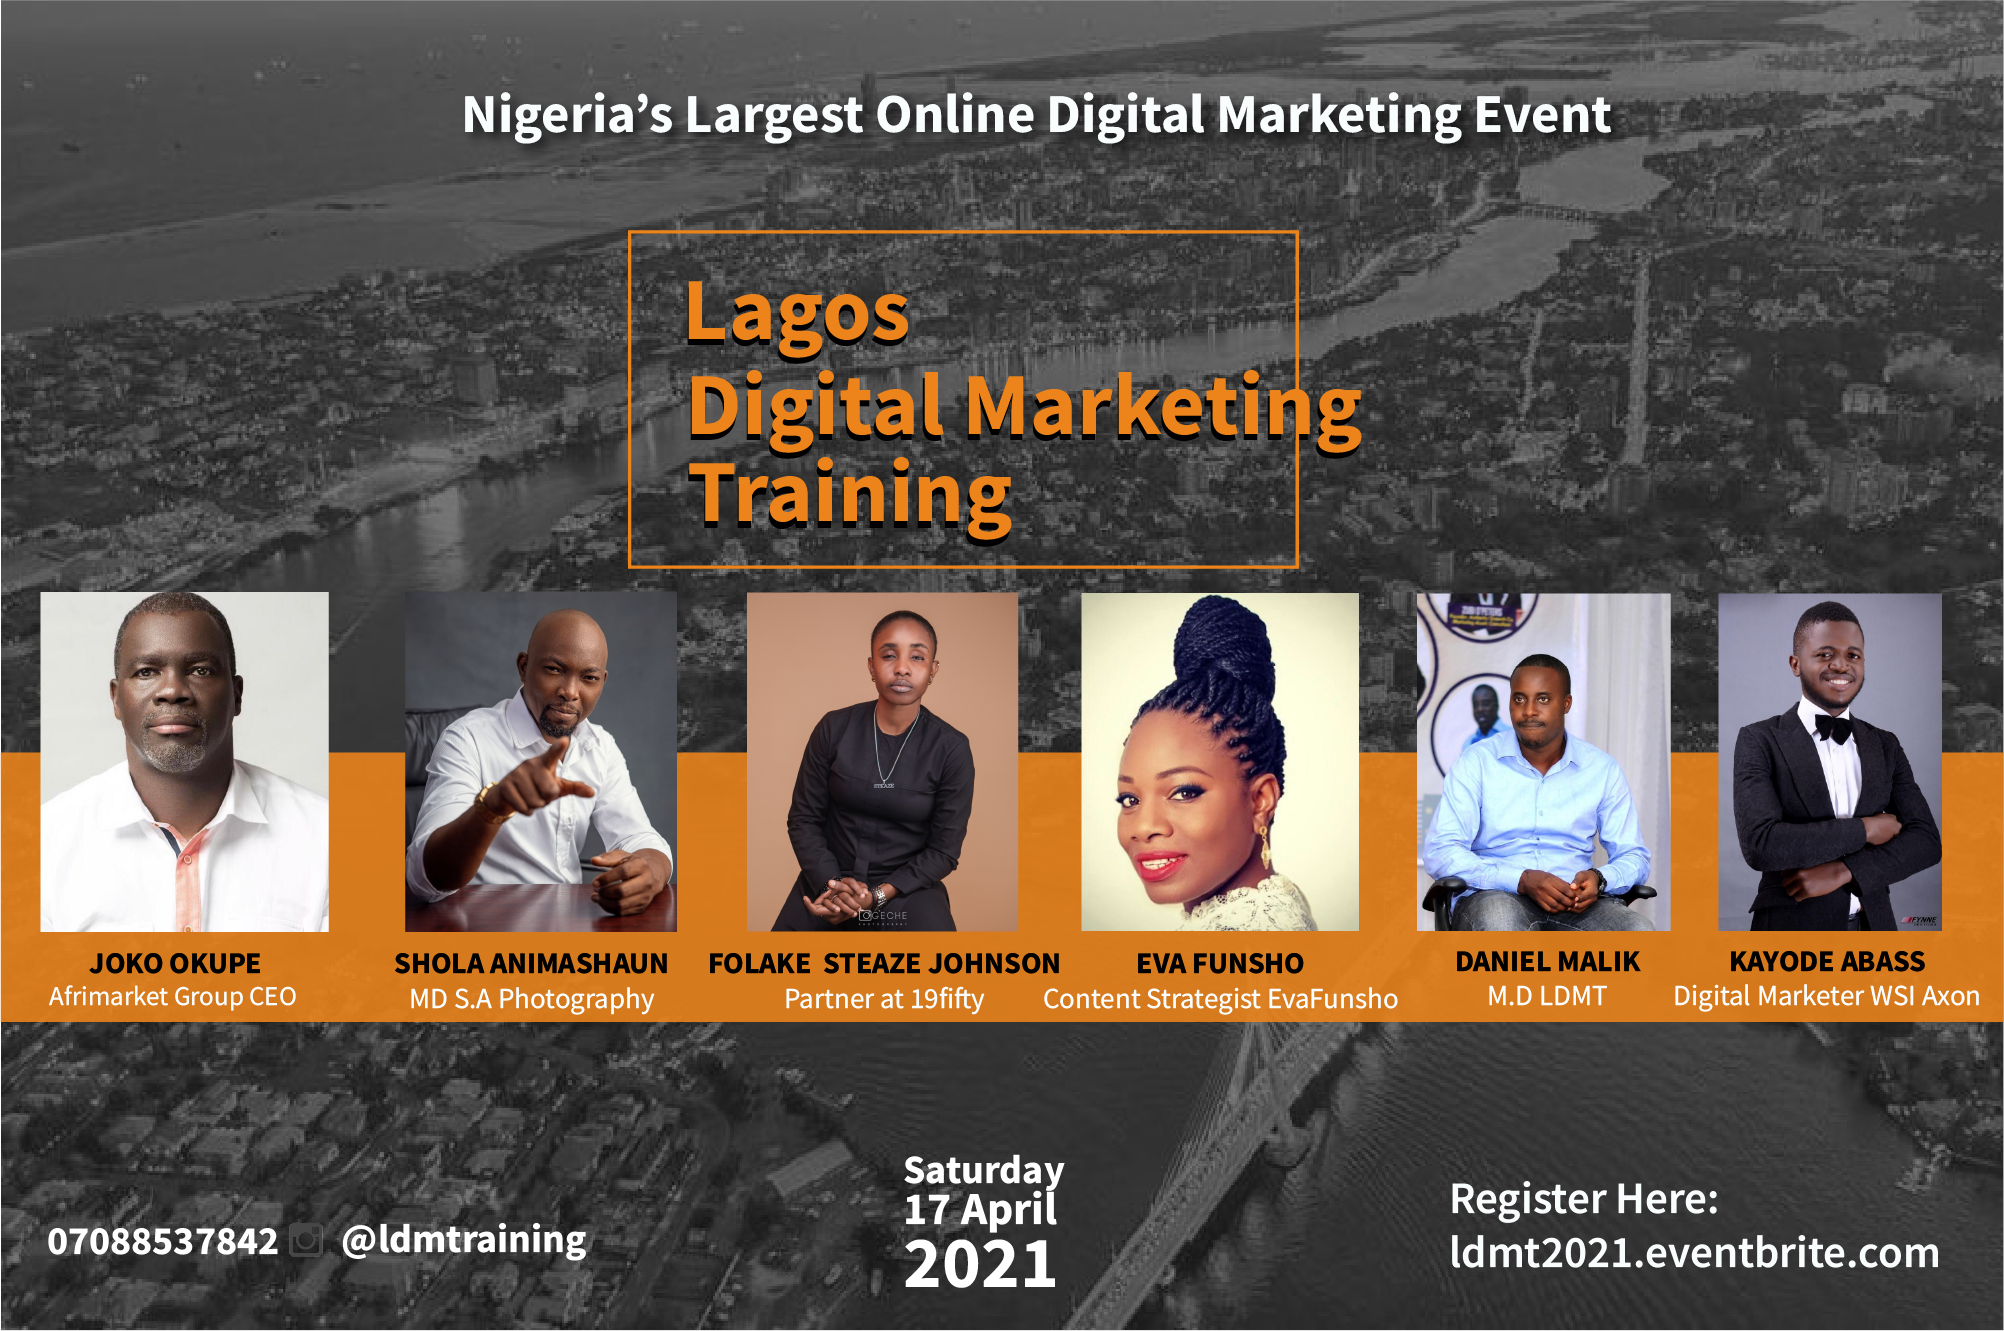 Lagos Digital Marketing Training Post free event in Nigeria using tickethub.ng, buy and sell tickets to event